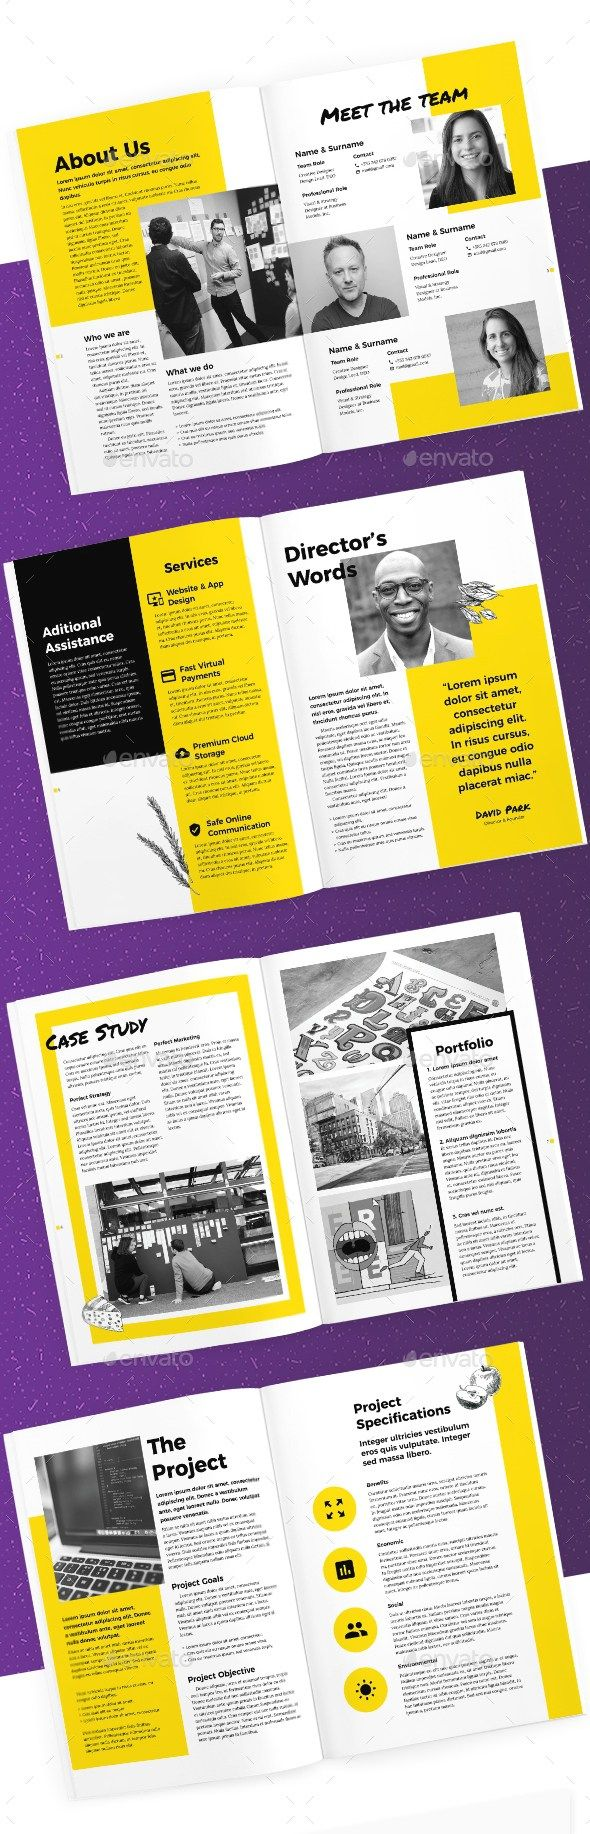 18 pages creative business proposal template indesign proposal 18 pages creative business proposal template indesign proposal brochure template wajeb